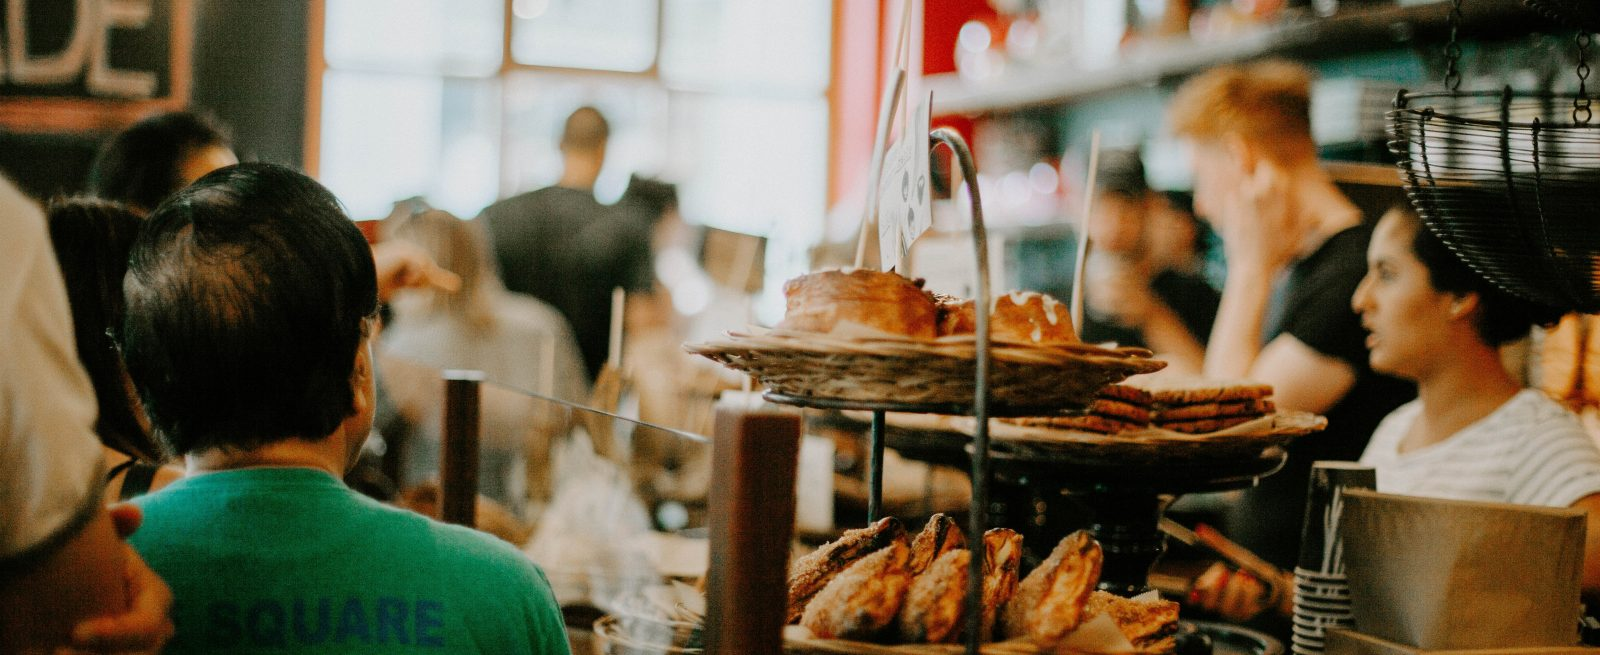 401k Plans For Restaurants The New Way To Retain Workers Modern